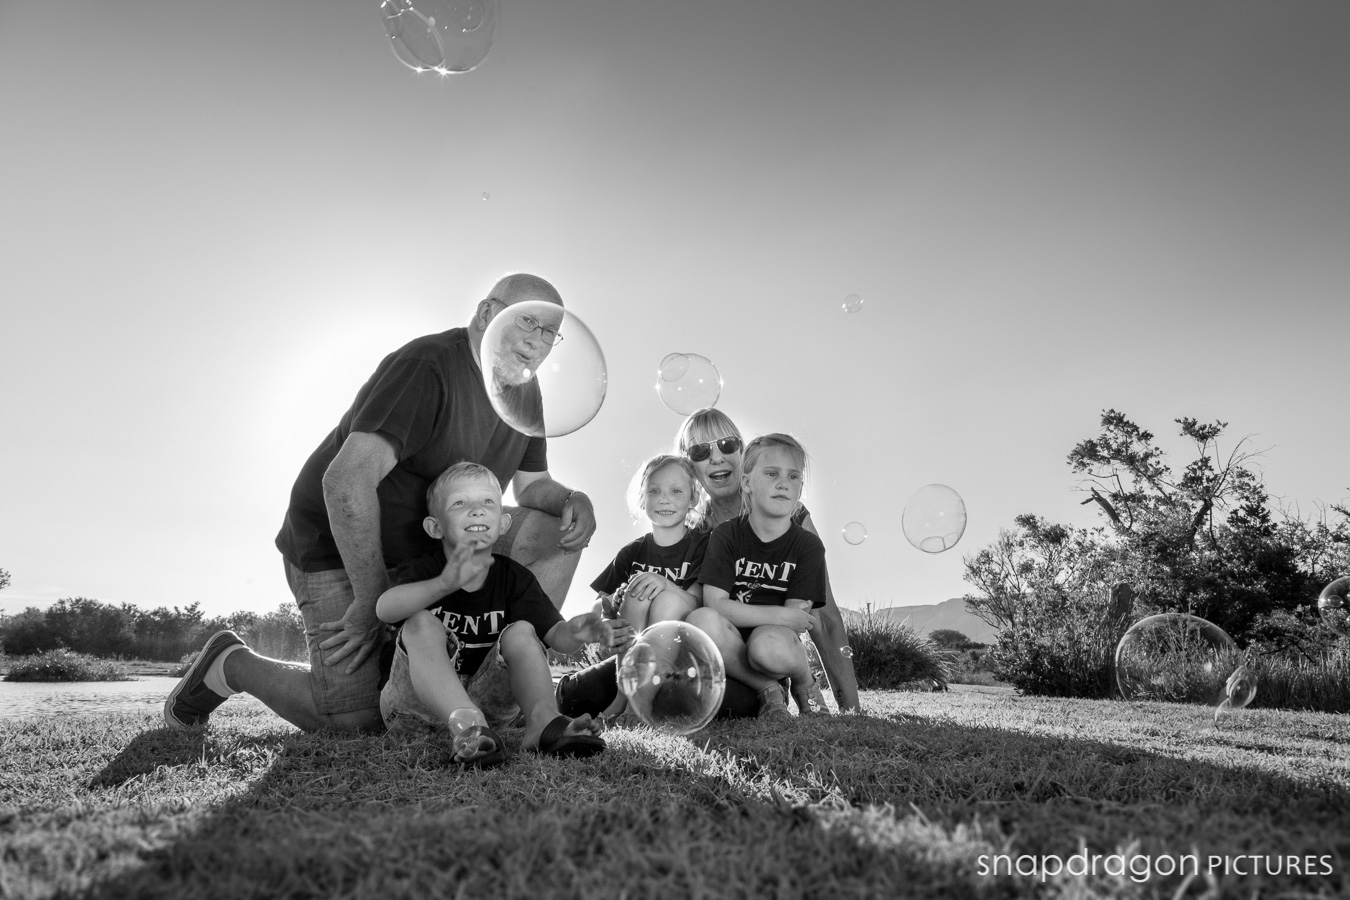 Children, Family Photography, Family Portraits, Fun, Gauteng, Grandchildren, Johannesburg, Kids, Leanne Russell Williams, Lifestyle, Natural Light, Photographer, Photographers, Photographs, Photos, Portraits, Snapdragon Pictures